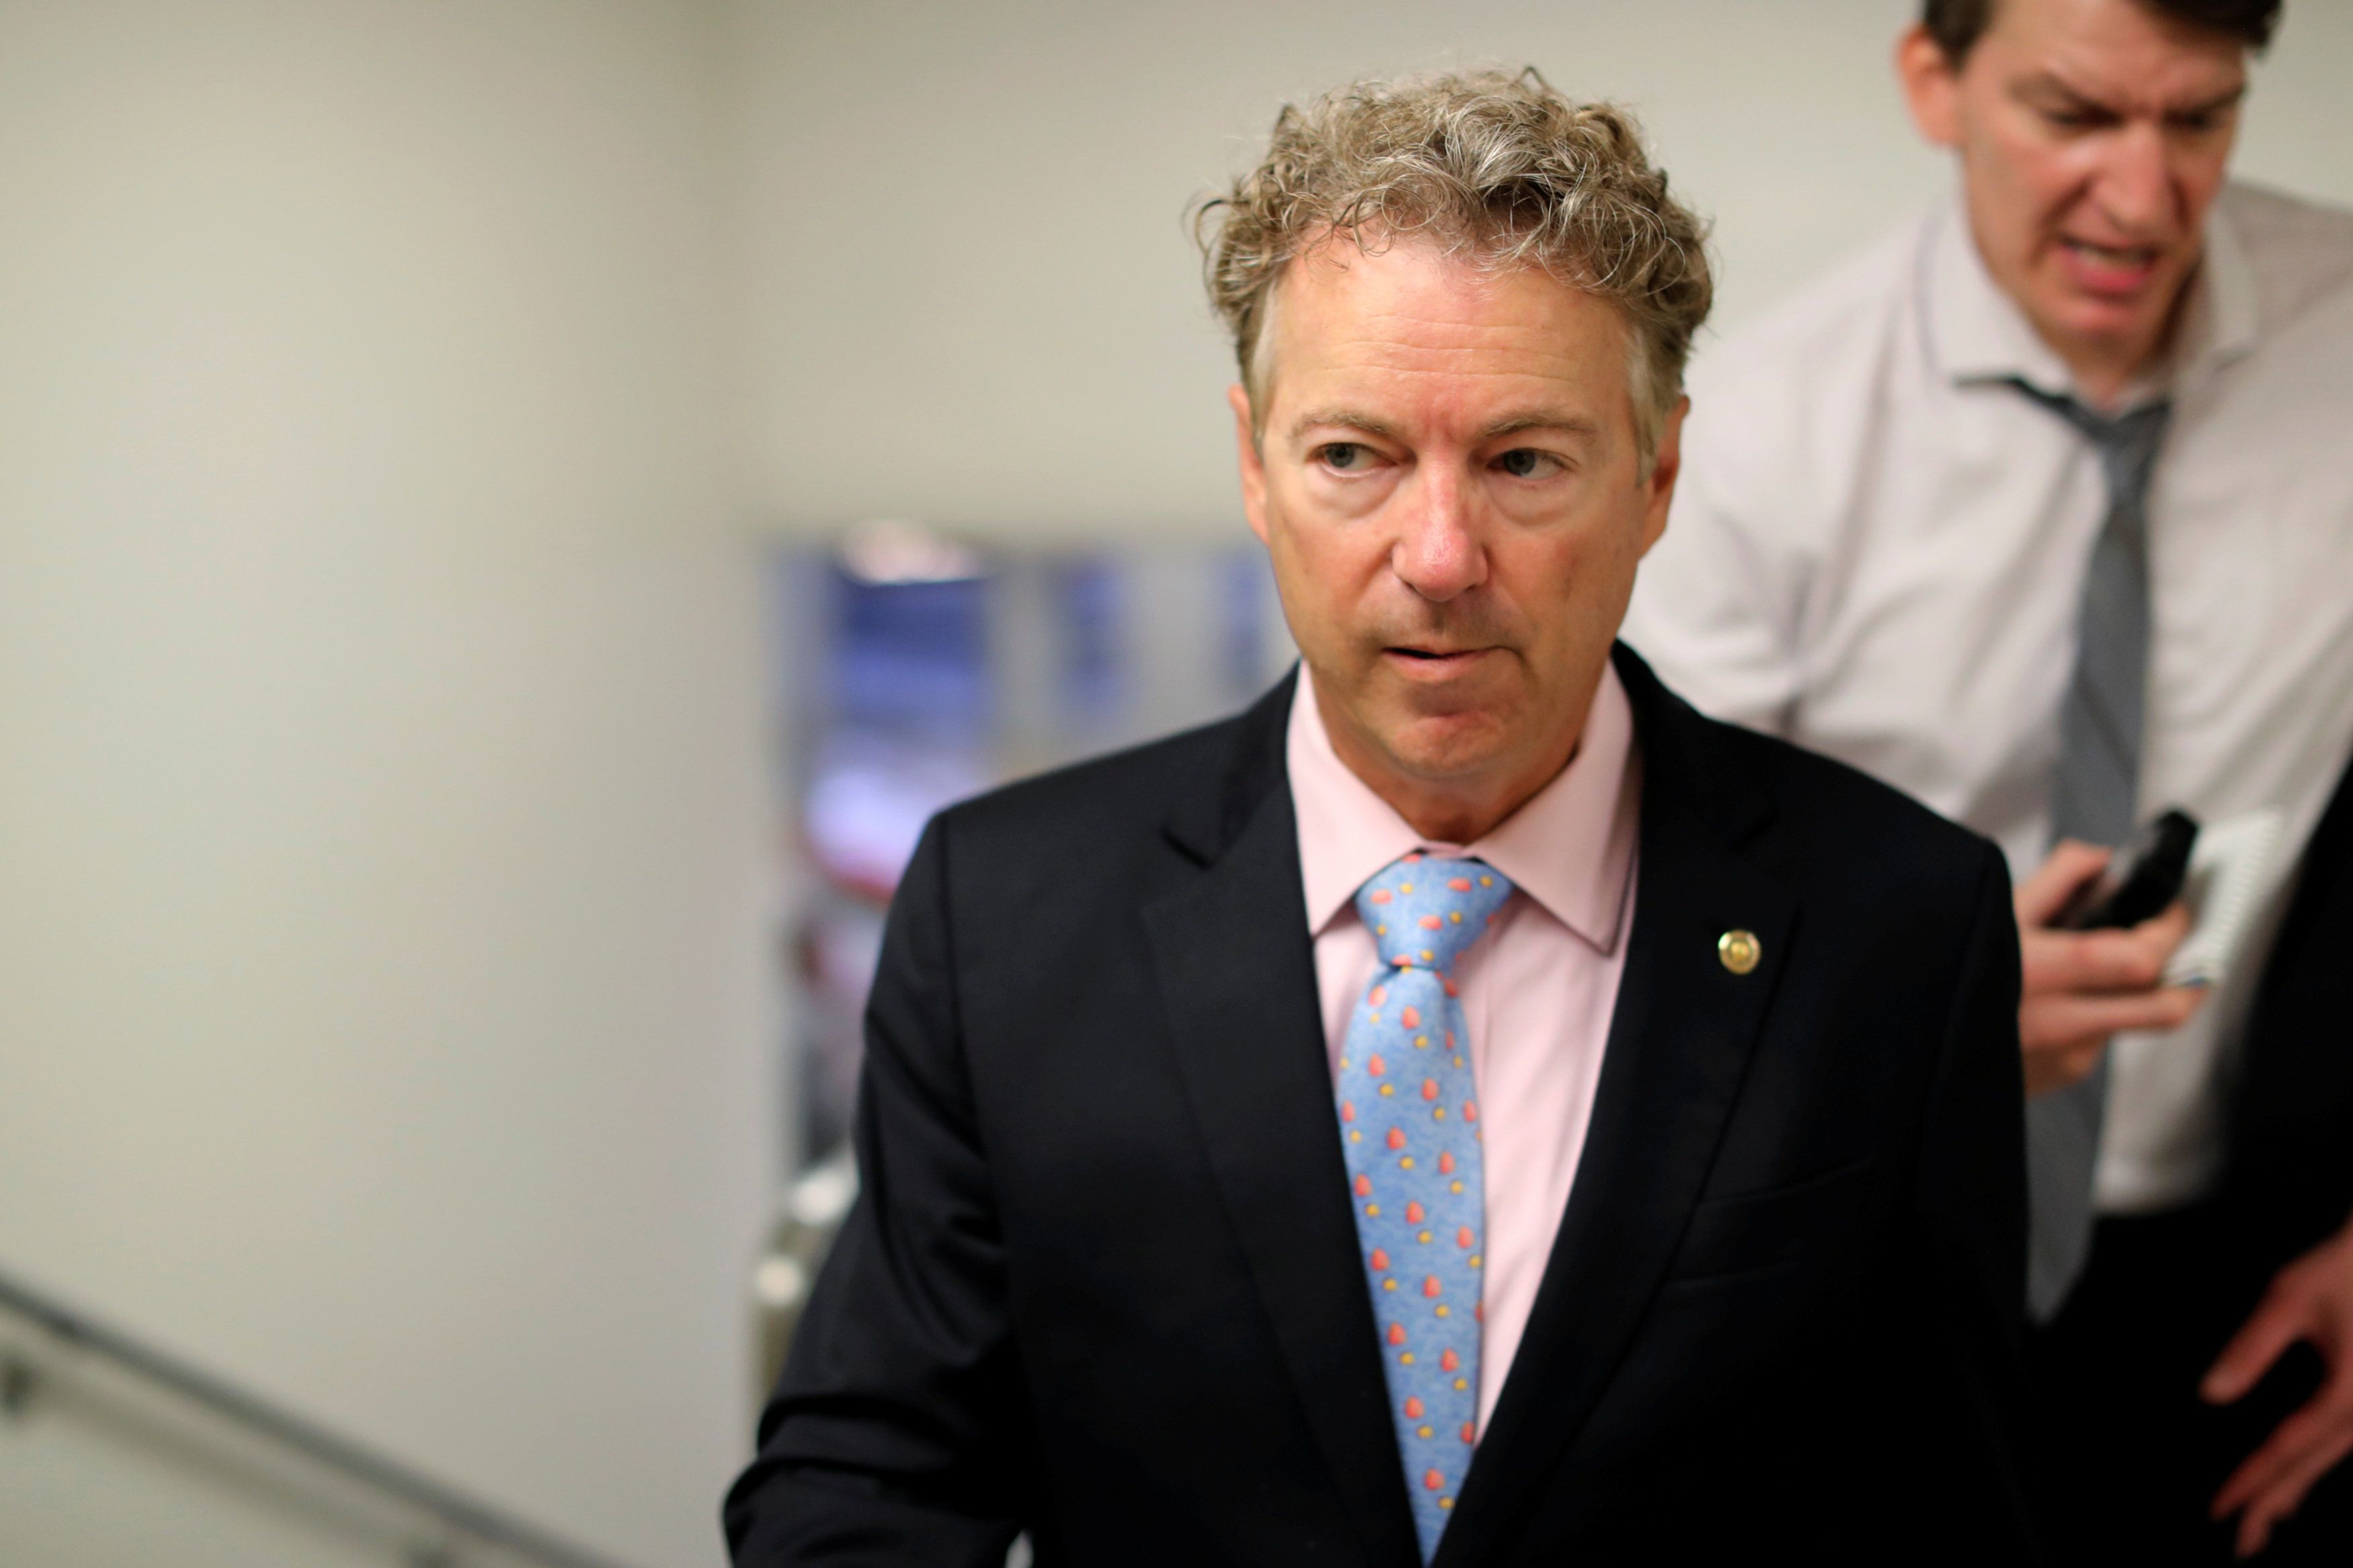 U.S. Senator Rand Paul (R-KY) is trailed by reporters as he arrives for the weekly Senate Republican caucus luncheon at the U.S. Capitol in Washington, U.S., May 22, 2018.  REUTERS/Jonathan Ernst